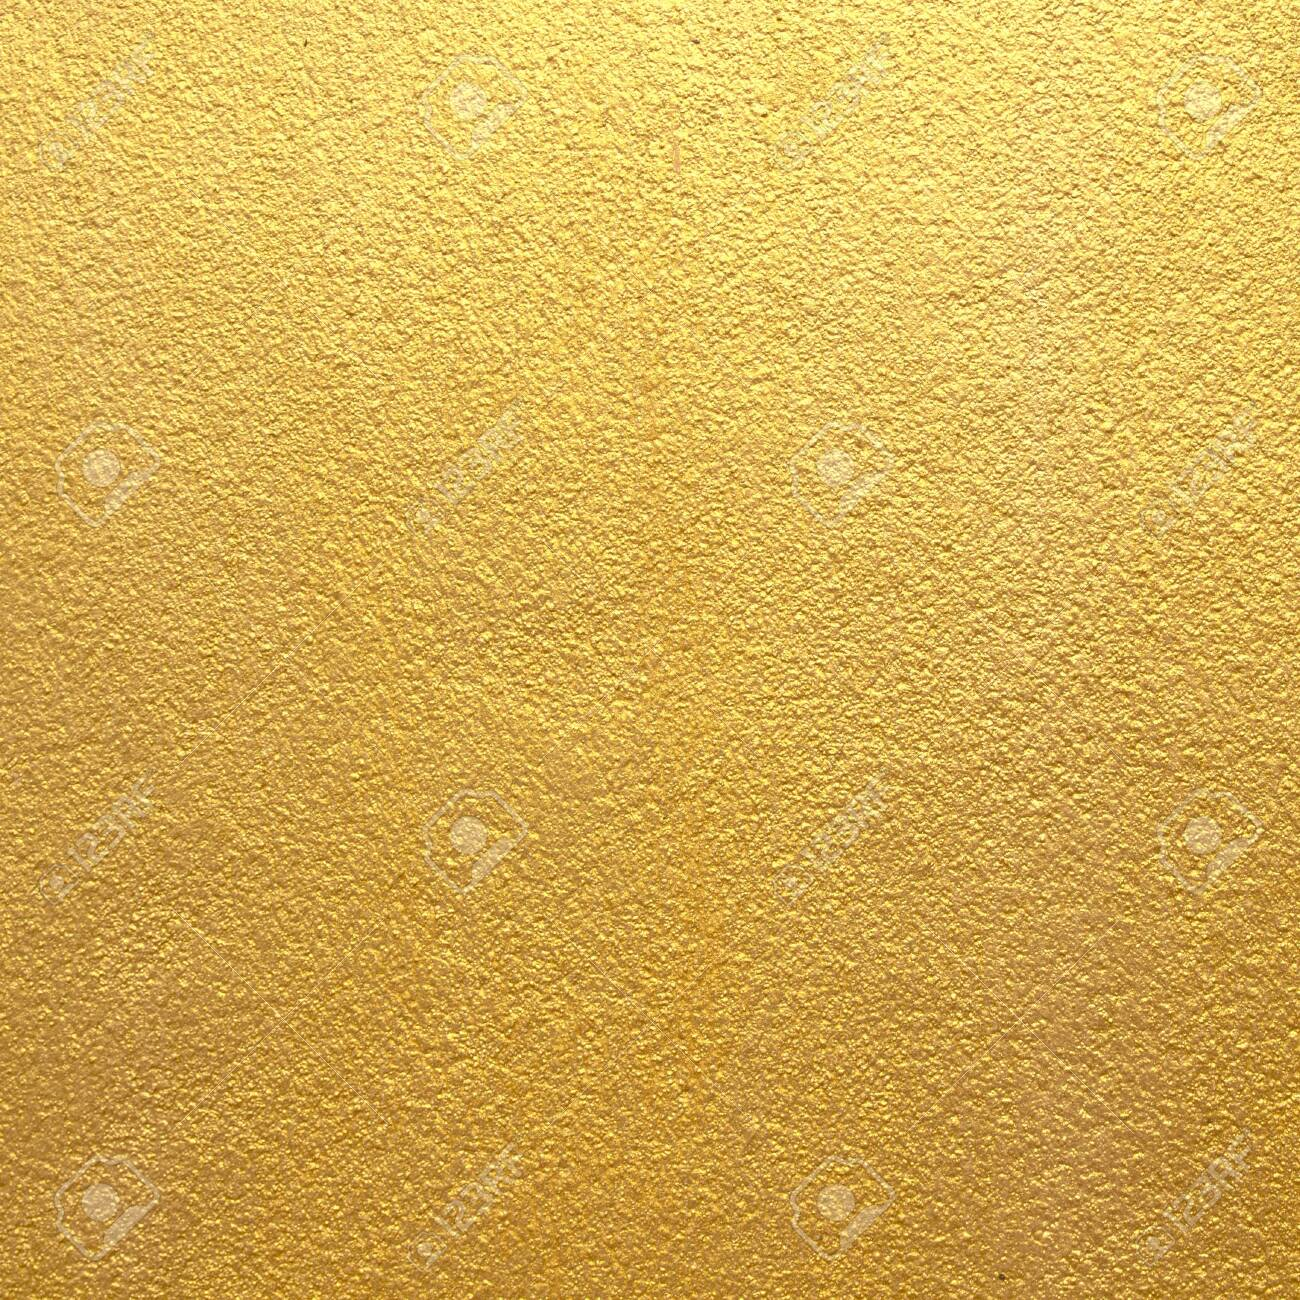 Gold cement wall background texture design - 143552463